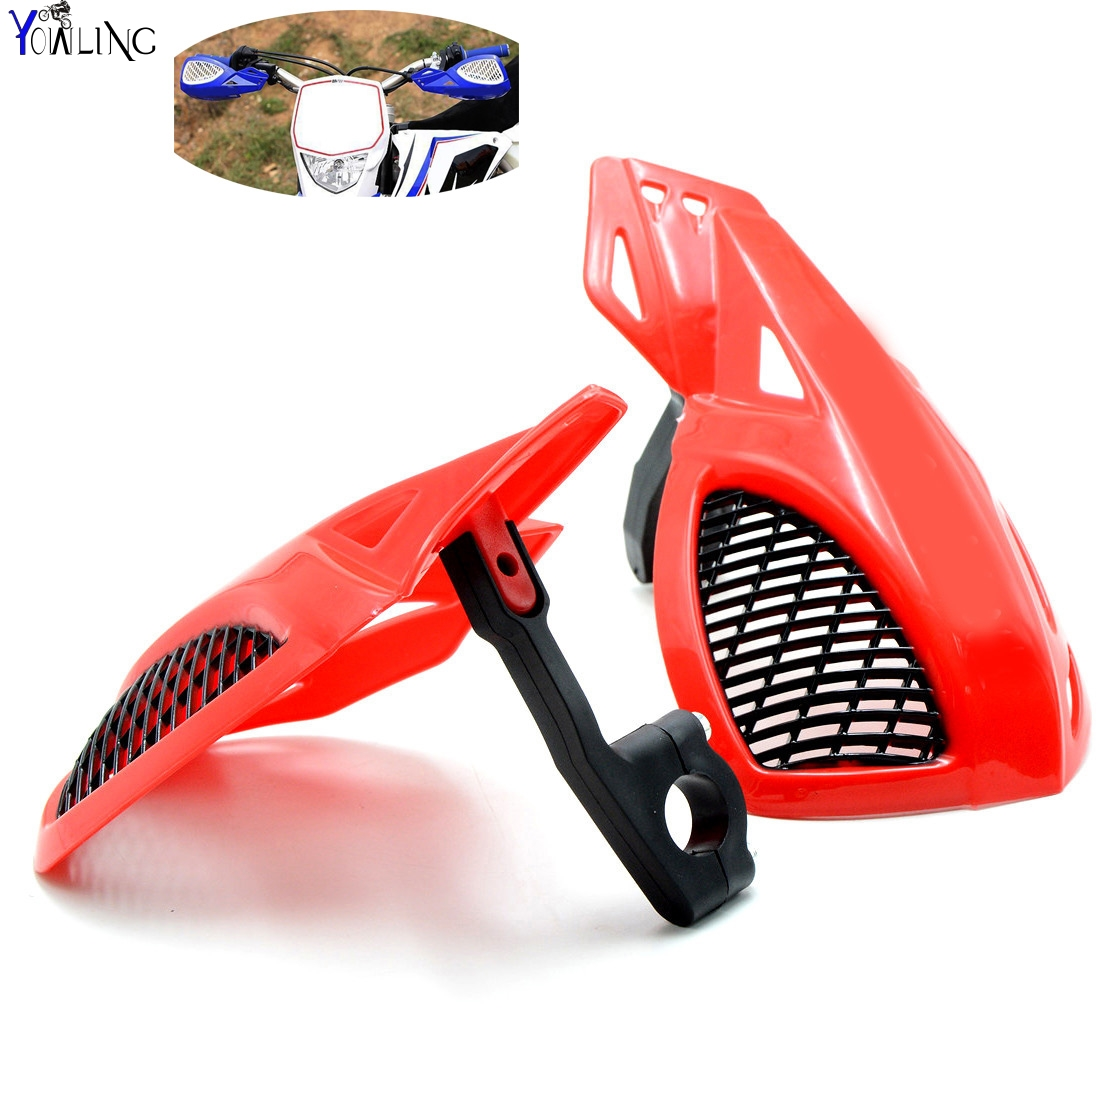 Dirt bike Motorcycle 7/8''22mm handlebar brake hand guard For HONDA XR CR CRF CRM 70F 80F 80R 85R 100F 110F 125R 150R dirt bike motorcycle 7 8 22mm handlebar brake hand guard for yamaha yz250x yz426f yz450f yz450fx yz80 yz85